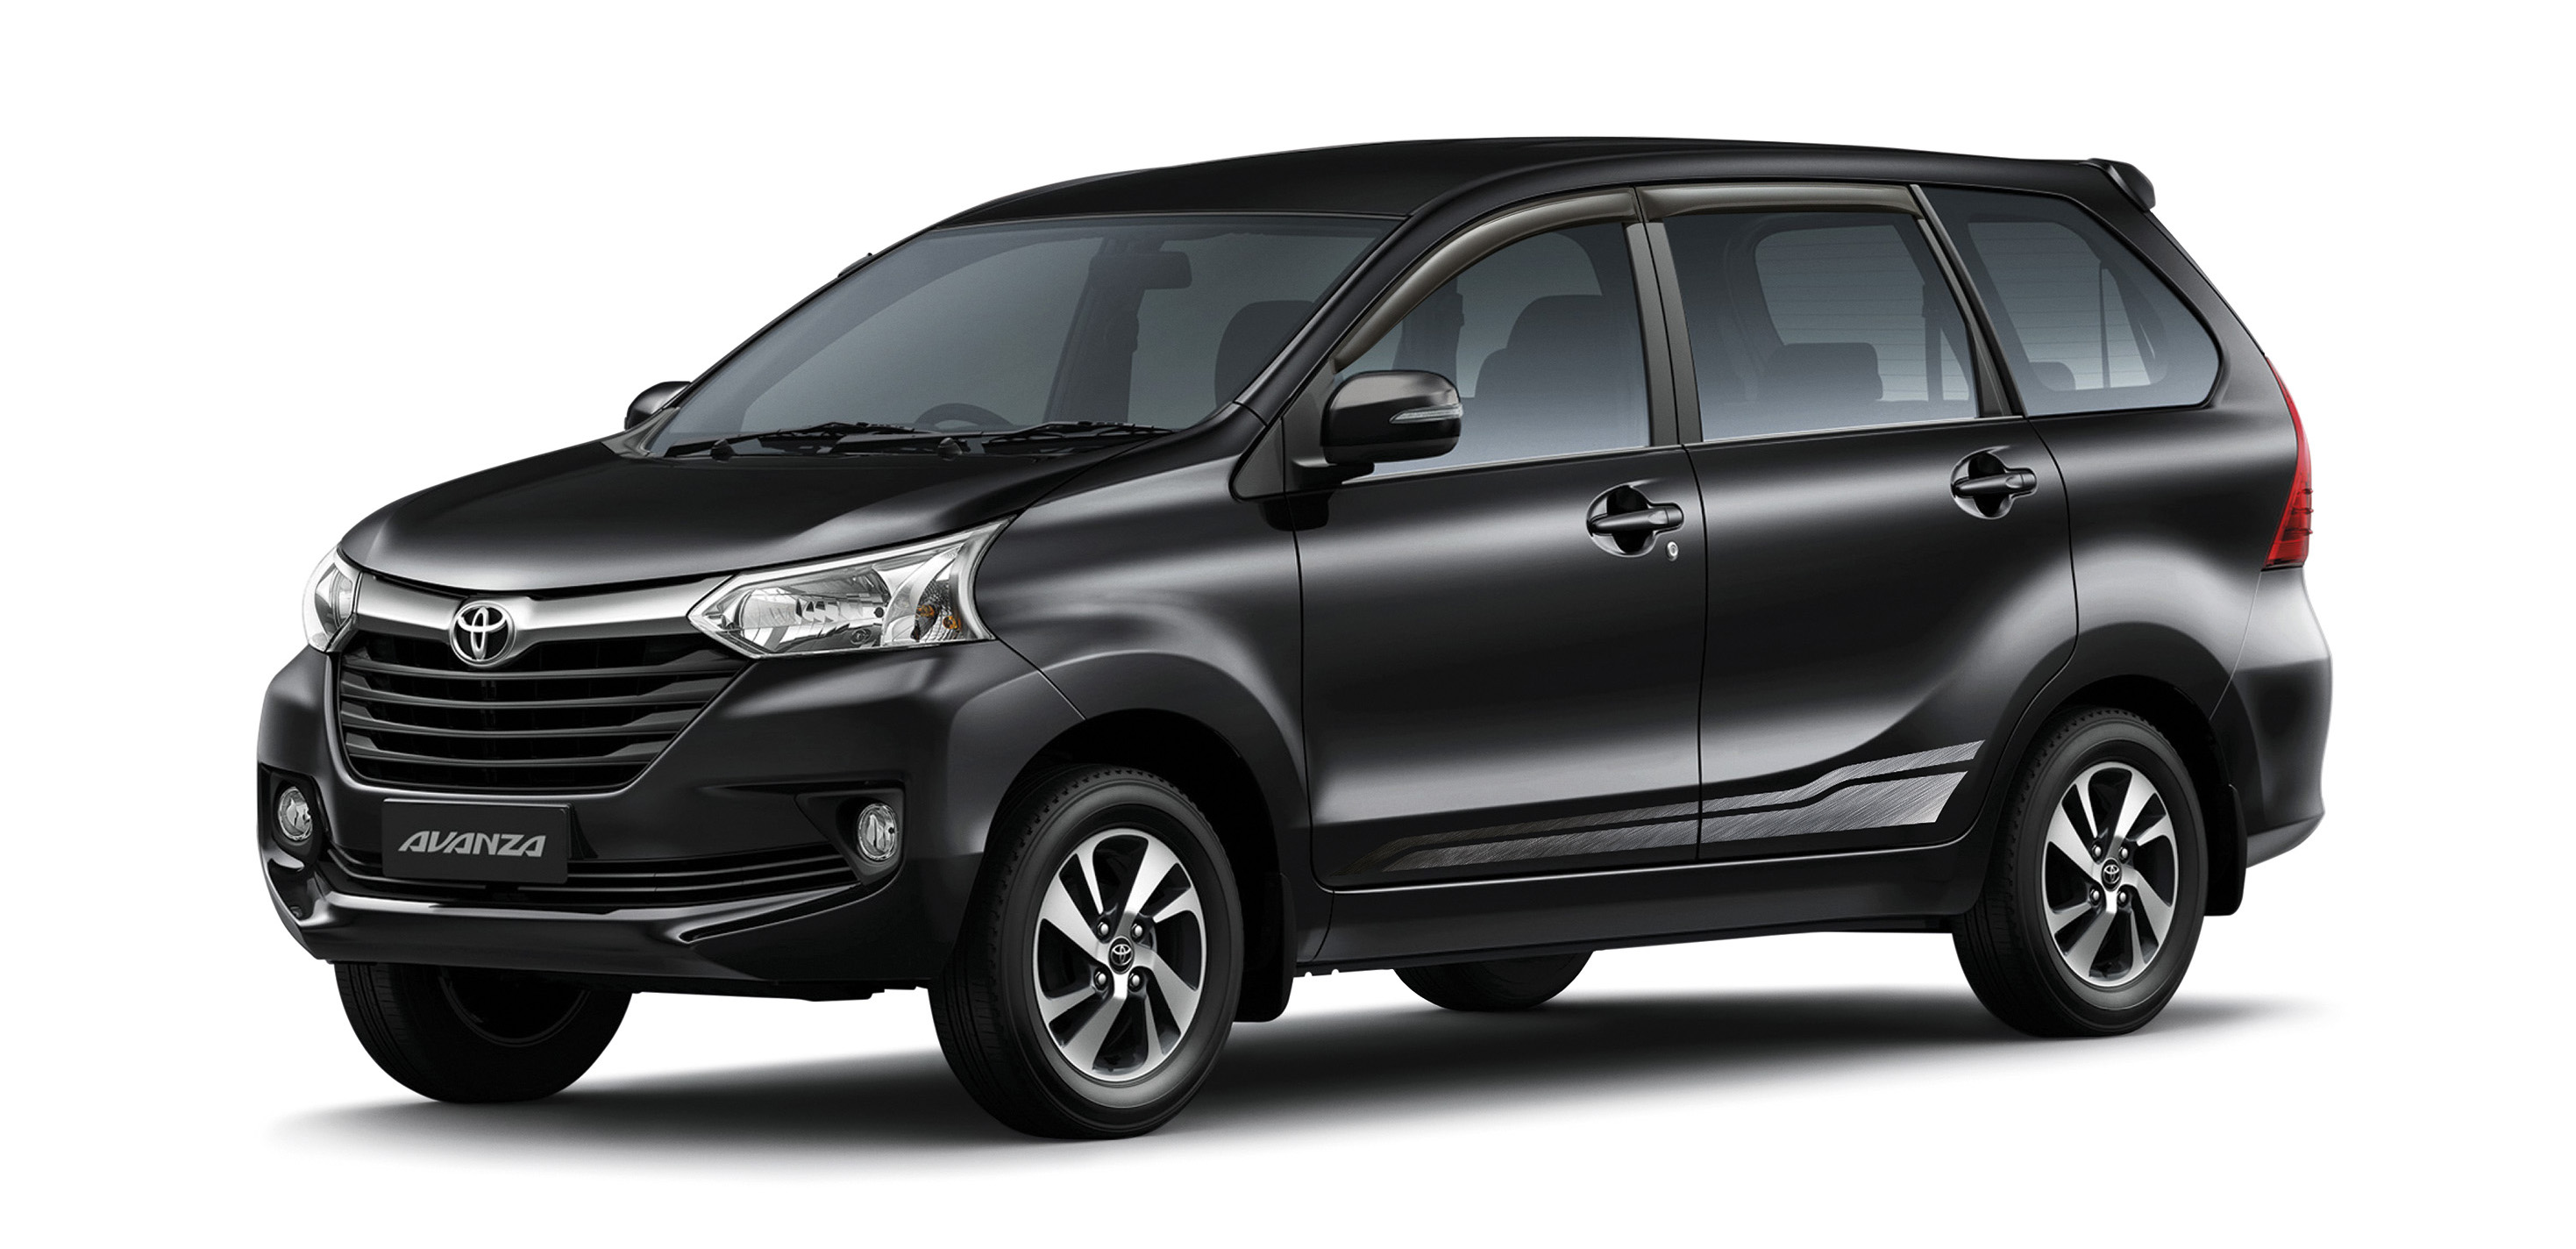 2014 Toyota Tacoma For Sale >> Avanza Facelift 2015.html | Autos Post